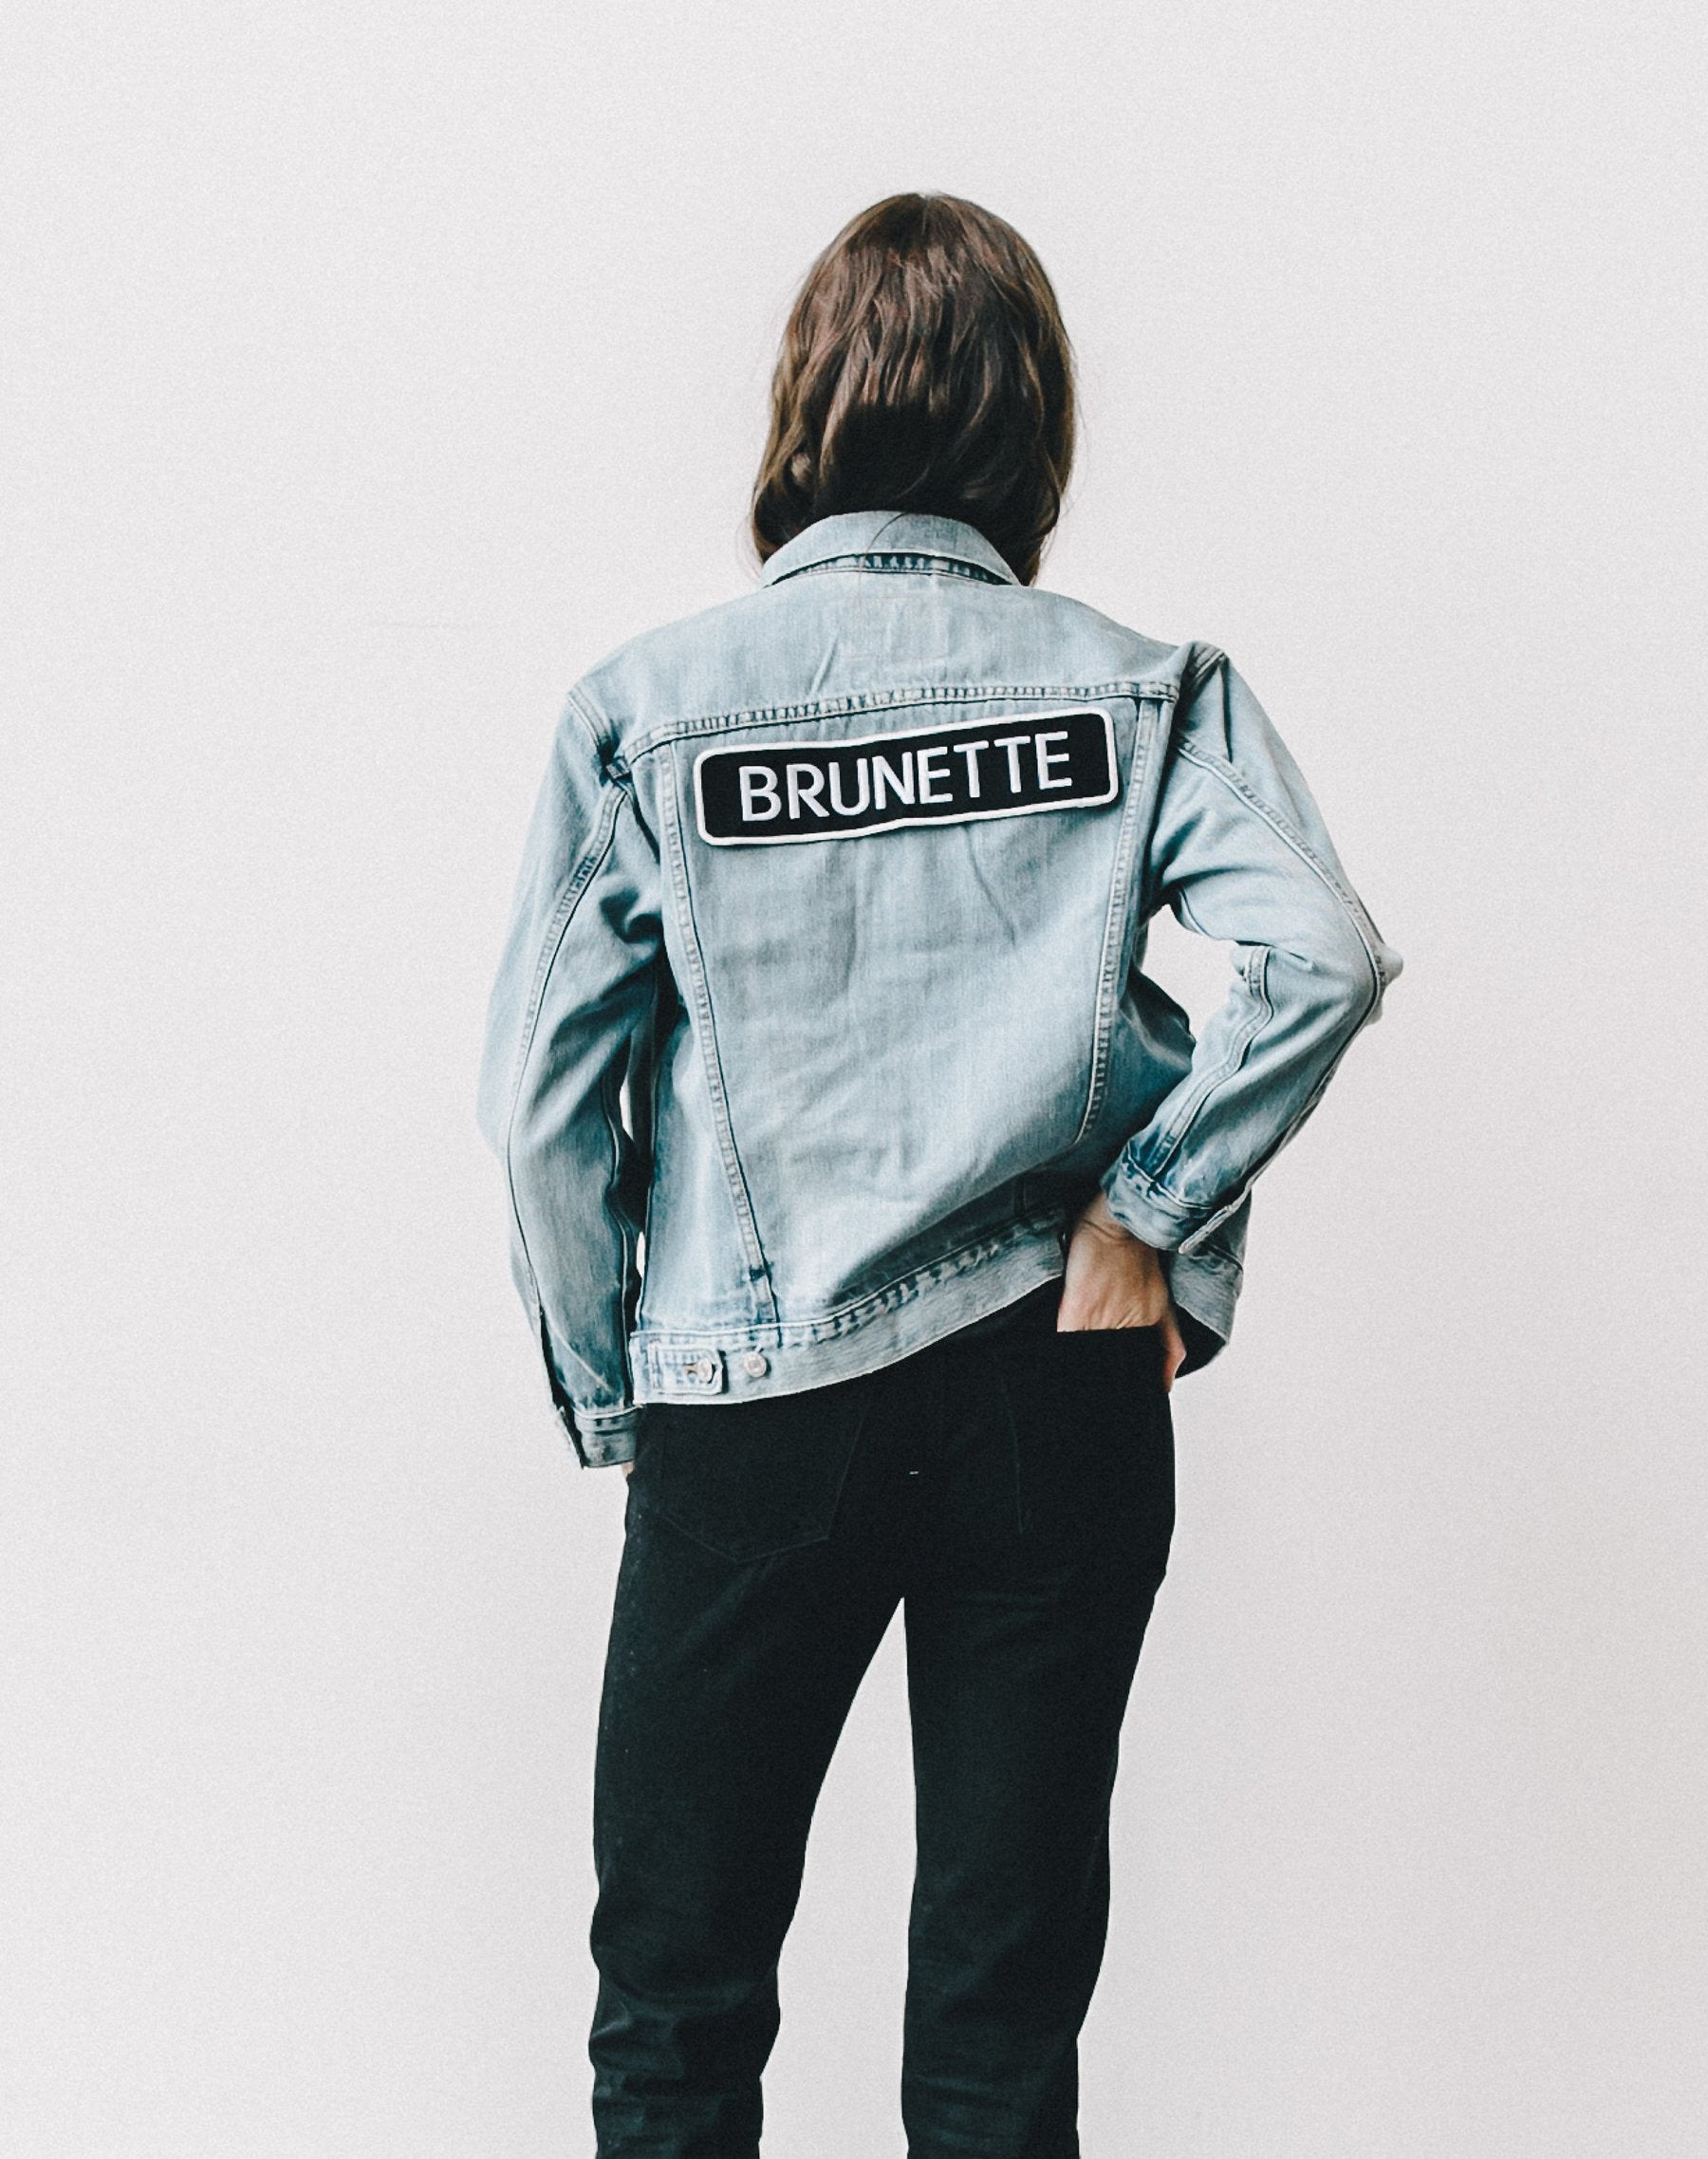 Photo of the Lindsay Brunette denim jacket by Brunette the Label.